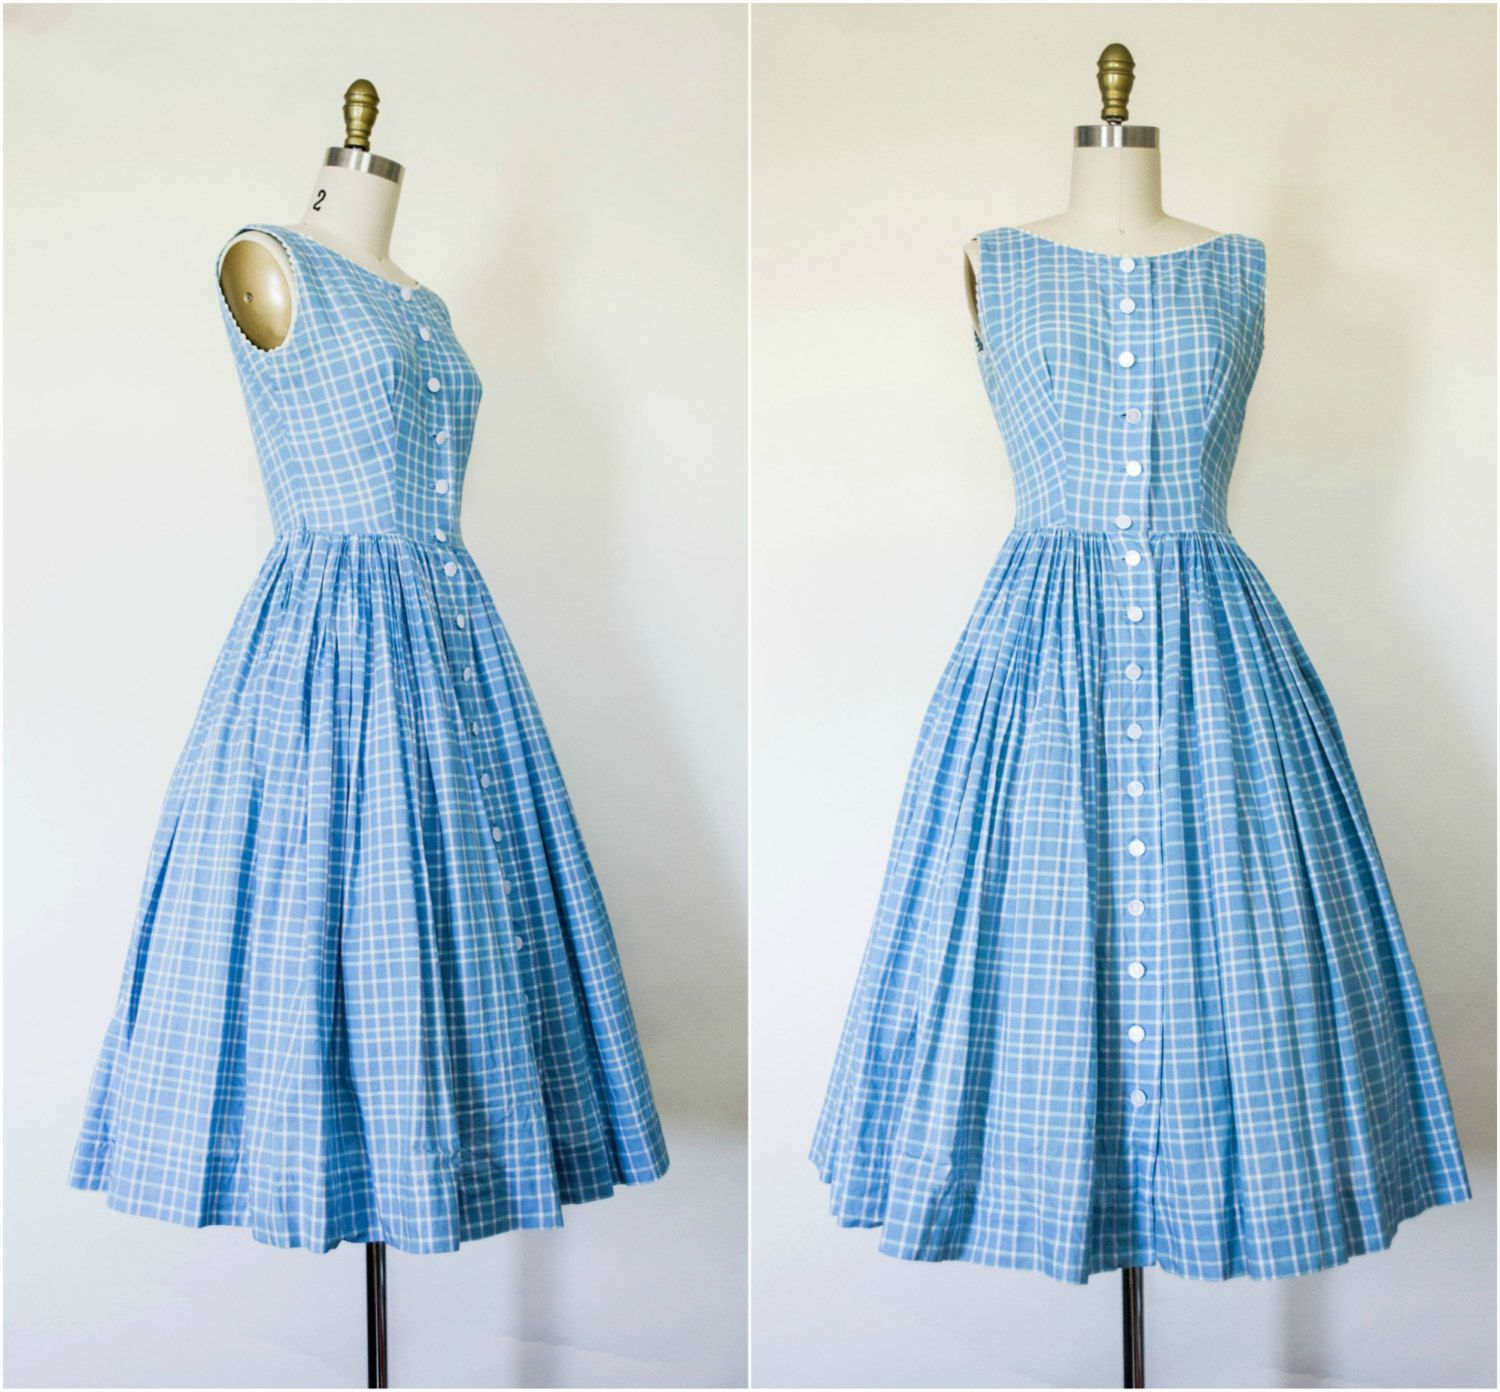 63096467dd8 1950s style summer sun dress . vintage 50s Lanz Originals baby blue  sleeveless cotton sundress with full skirt . button up front small by  VelvetPinVintage ...